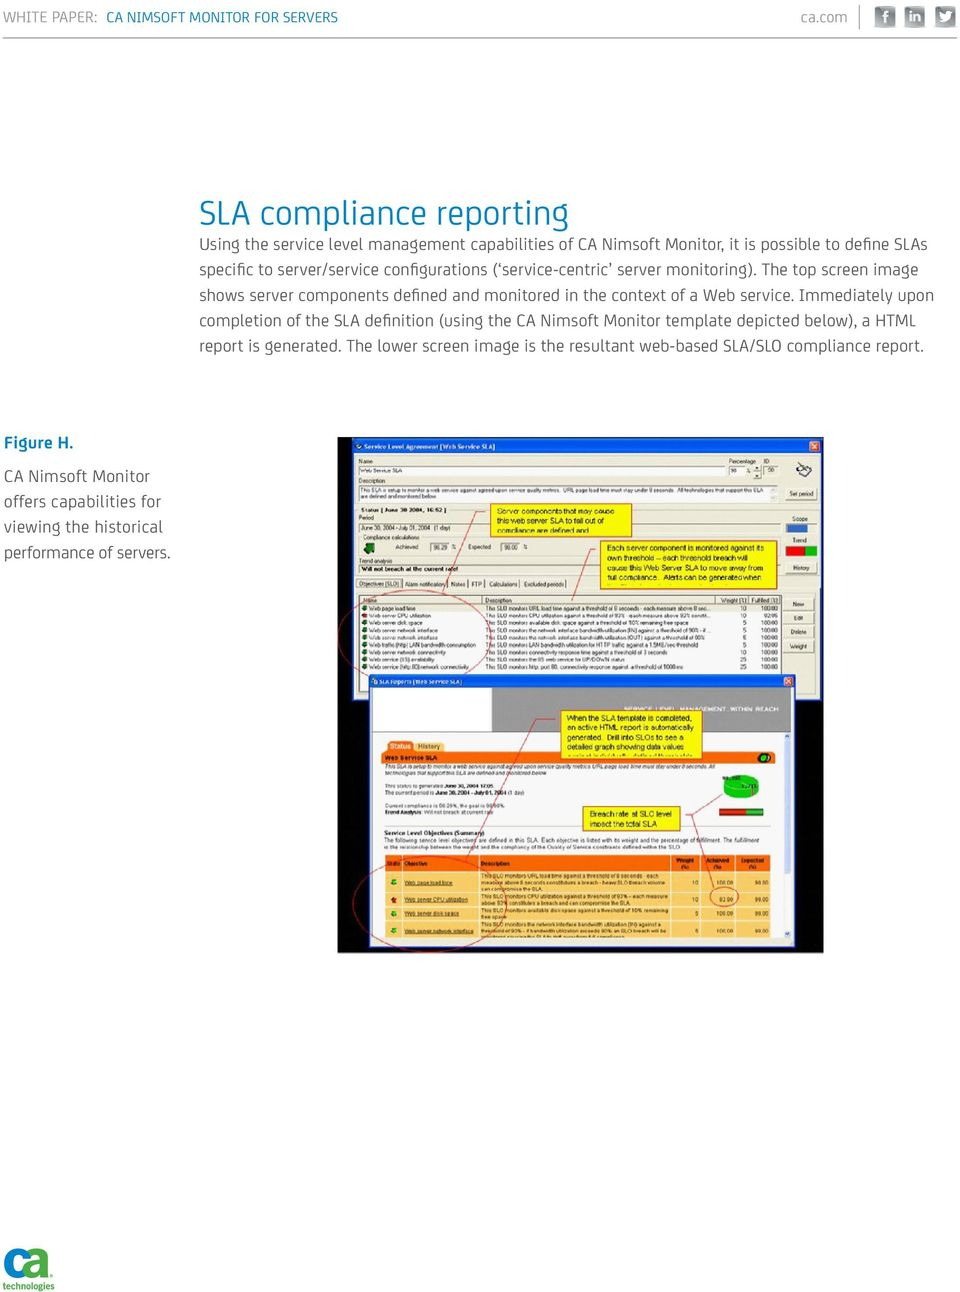 Immediately upon completion of the SLA definition (using the CA Nimsoft Monitor template depicted below), a HTML report is generated.